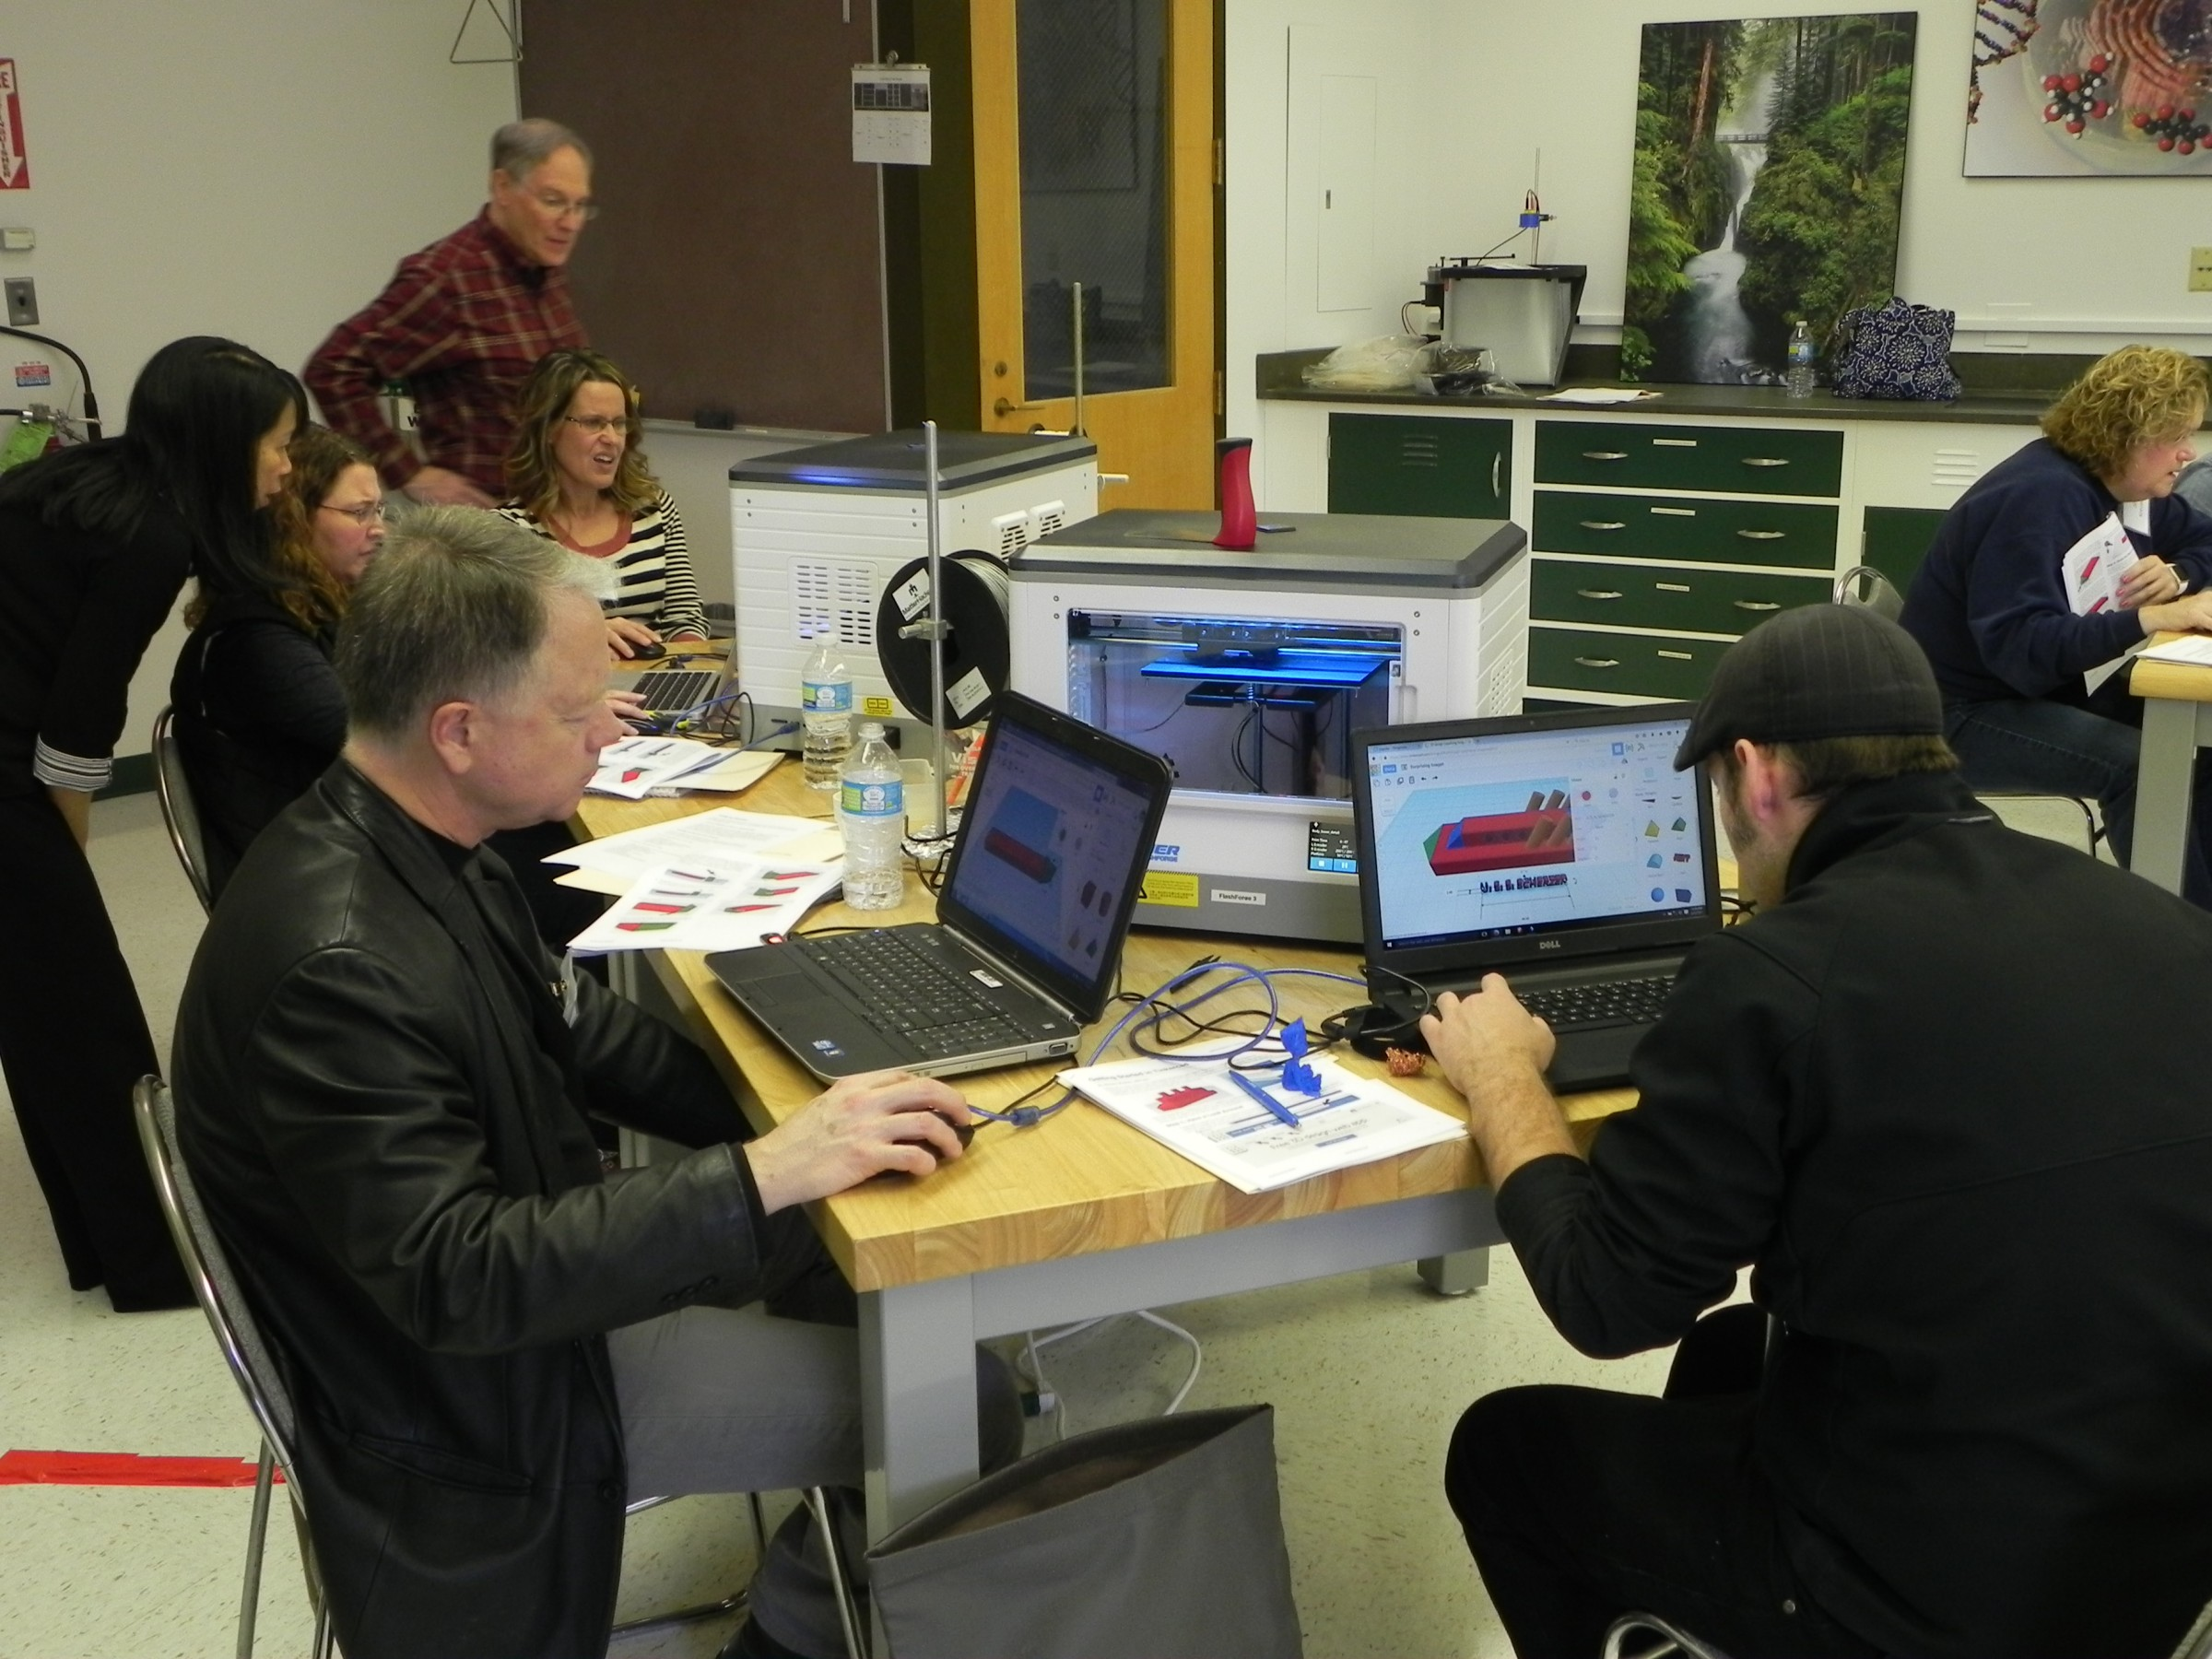 Teachers using 3D printers in a workshop setting